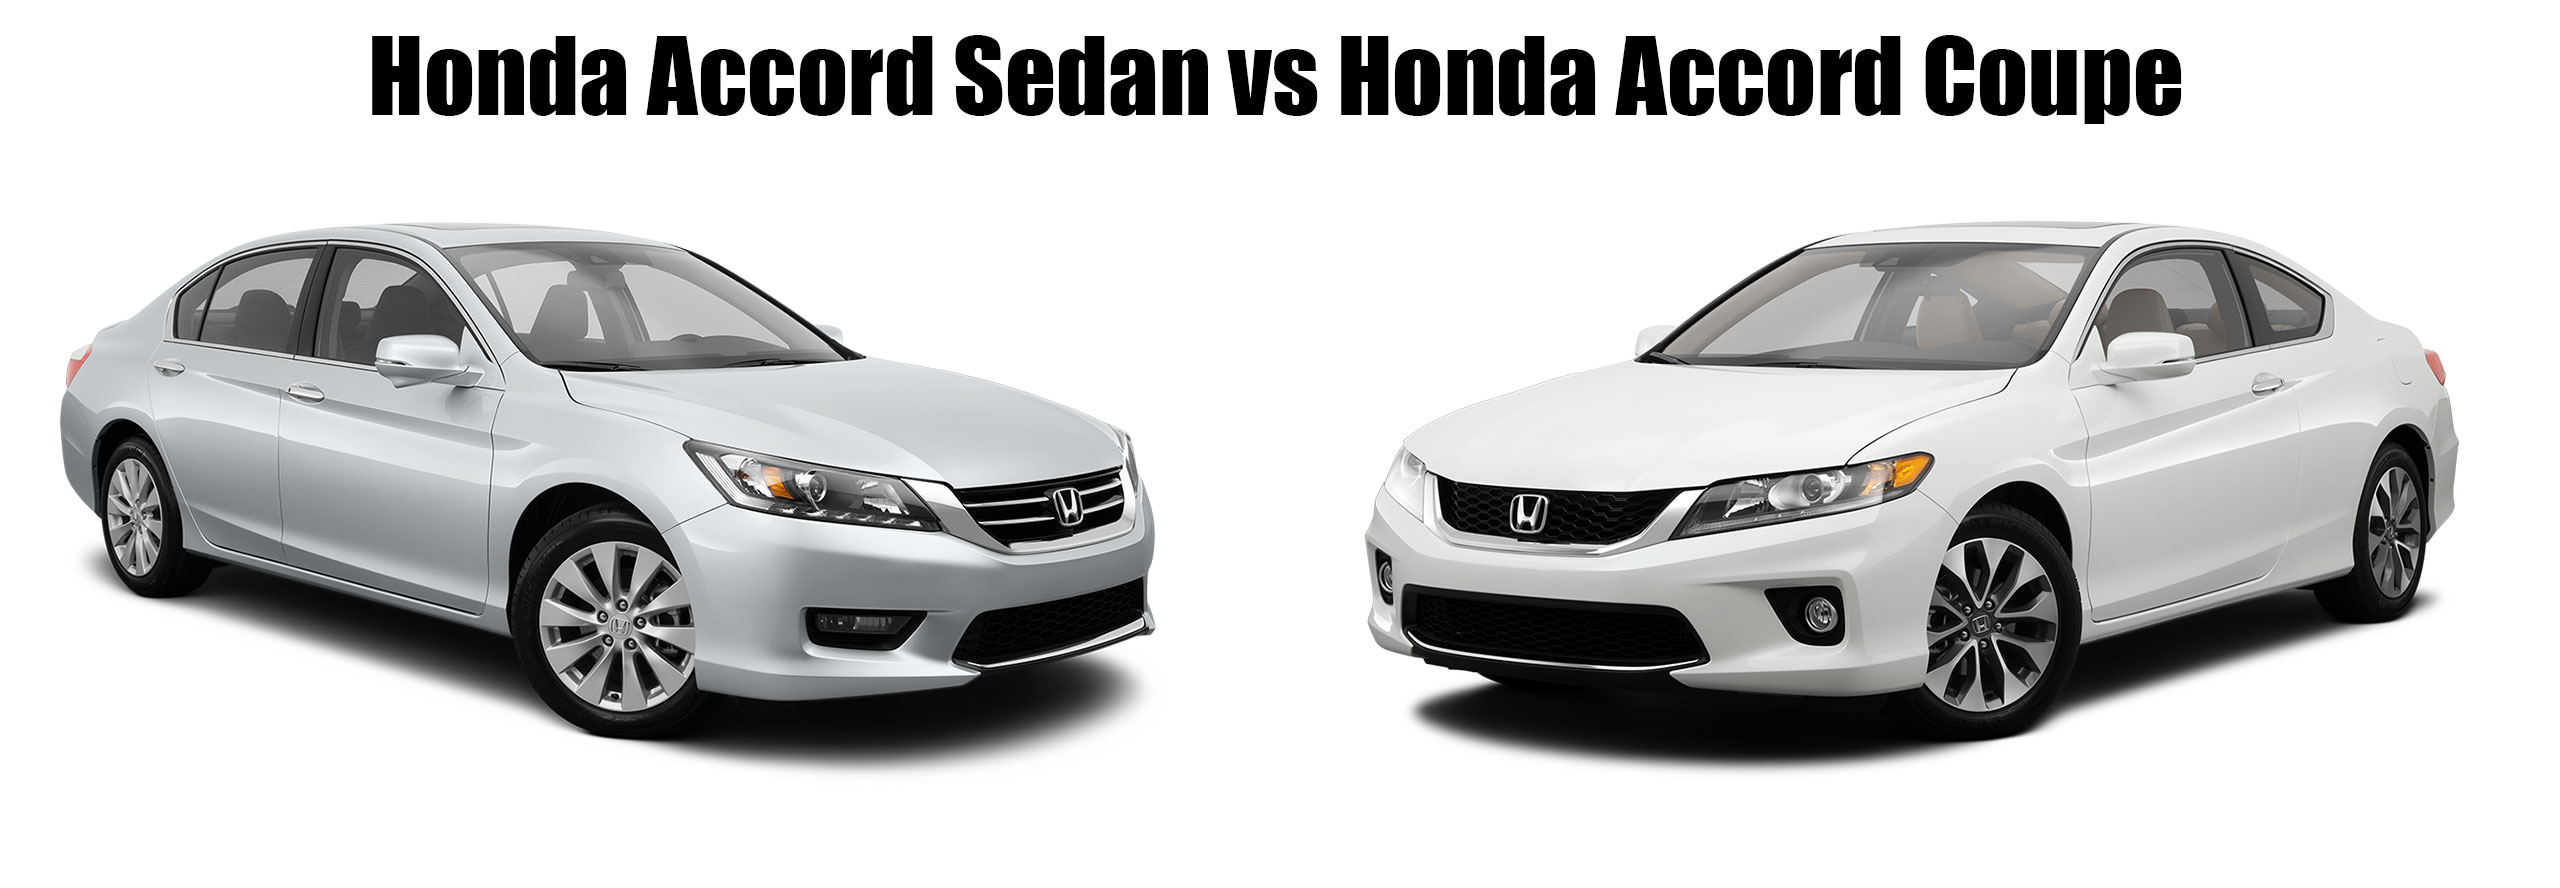 Honda Accord Coupe Vs Sedan Comparison Hendrick Honda Bradenton